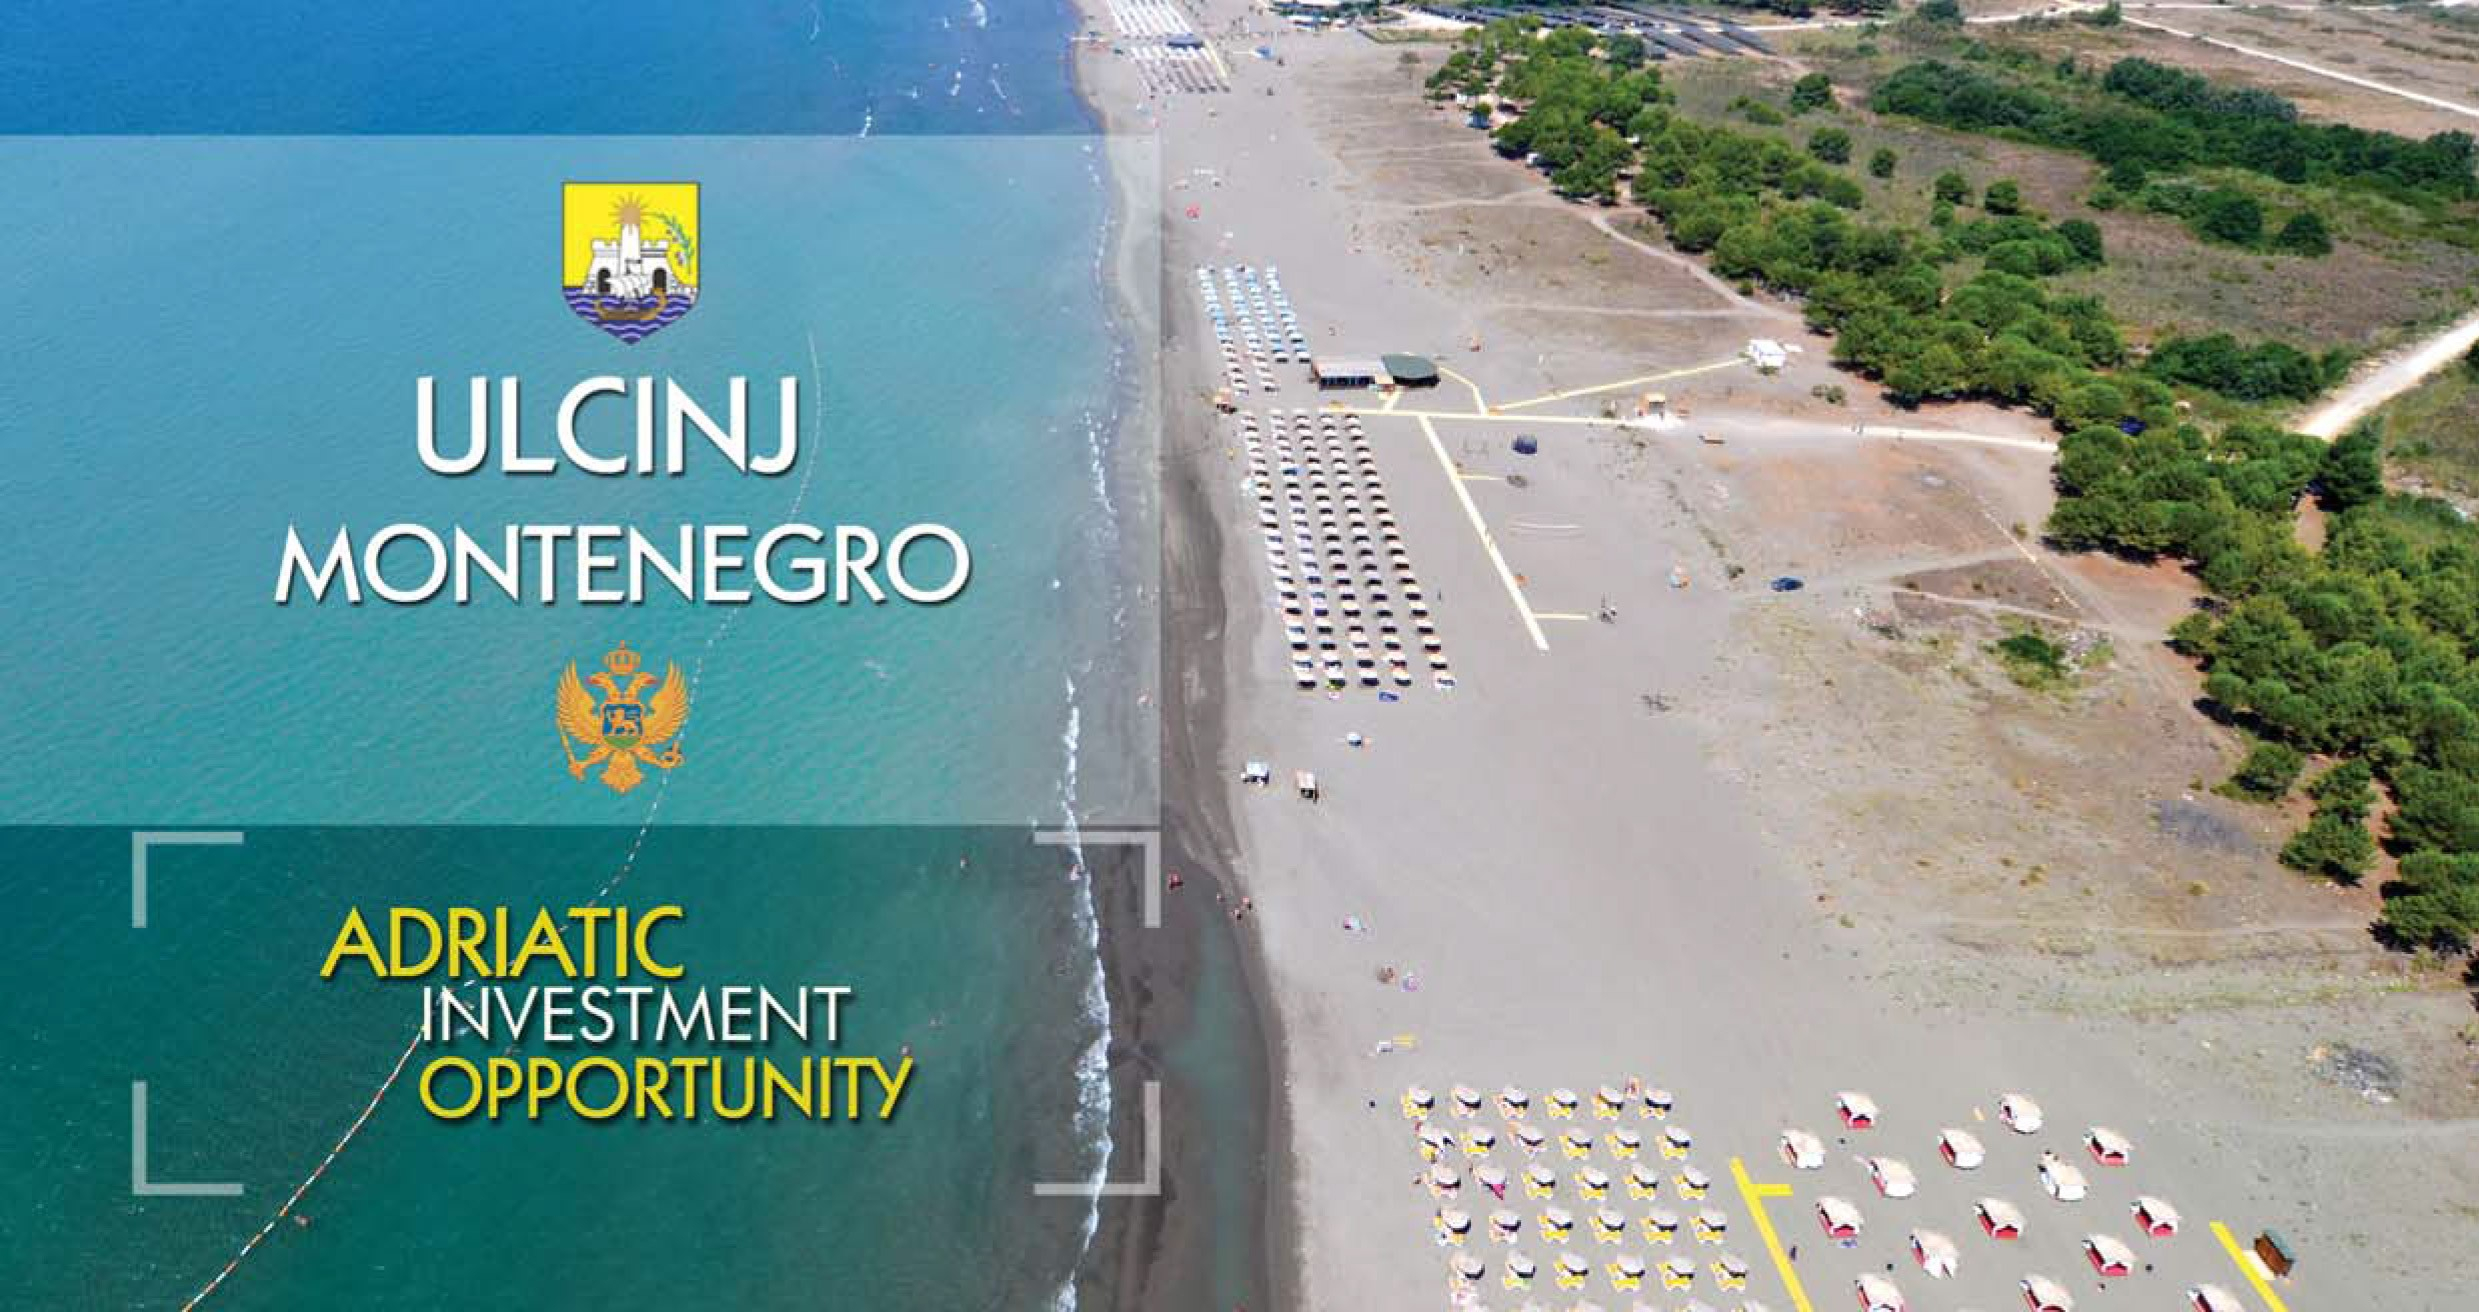 Adriatic investment opportunity